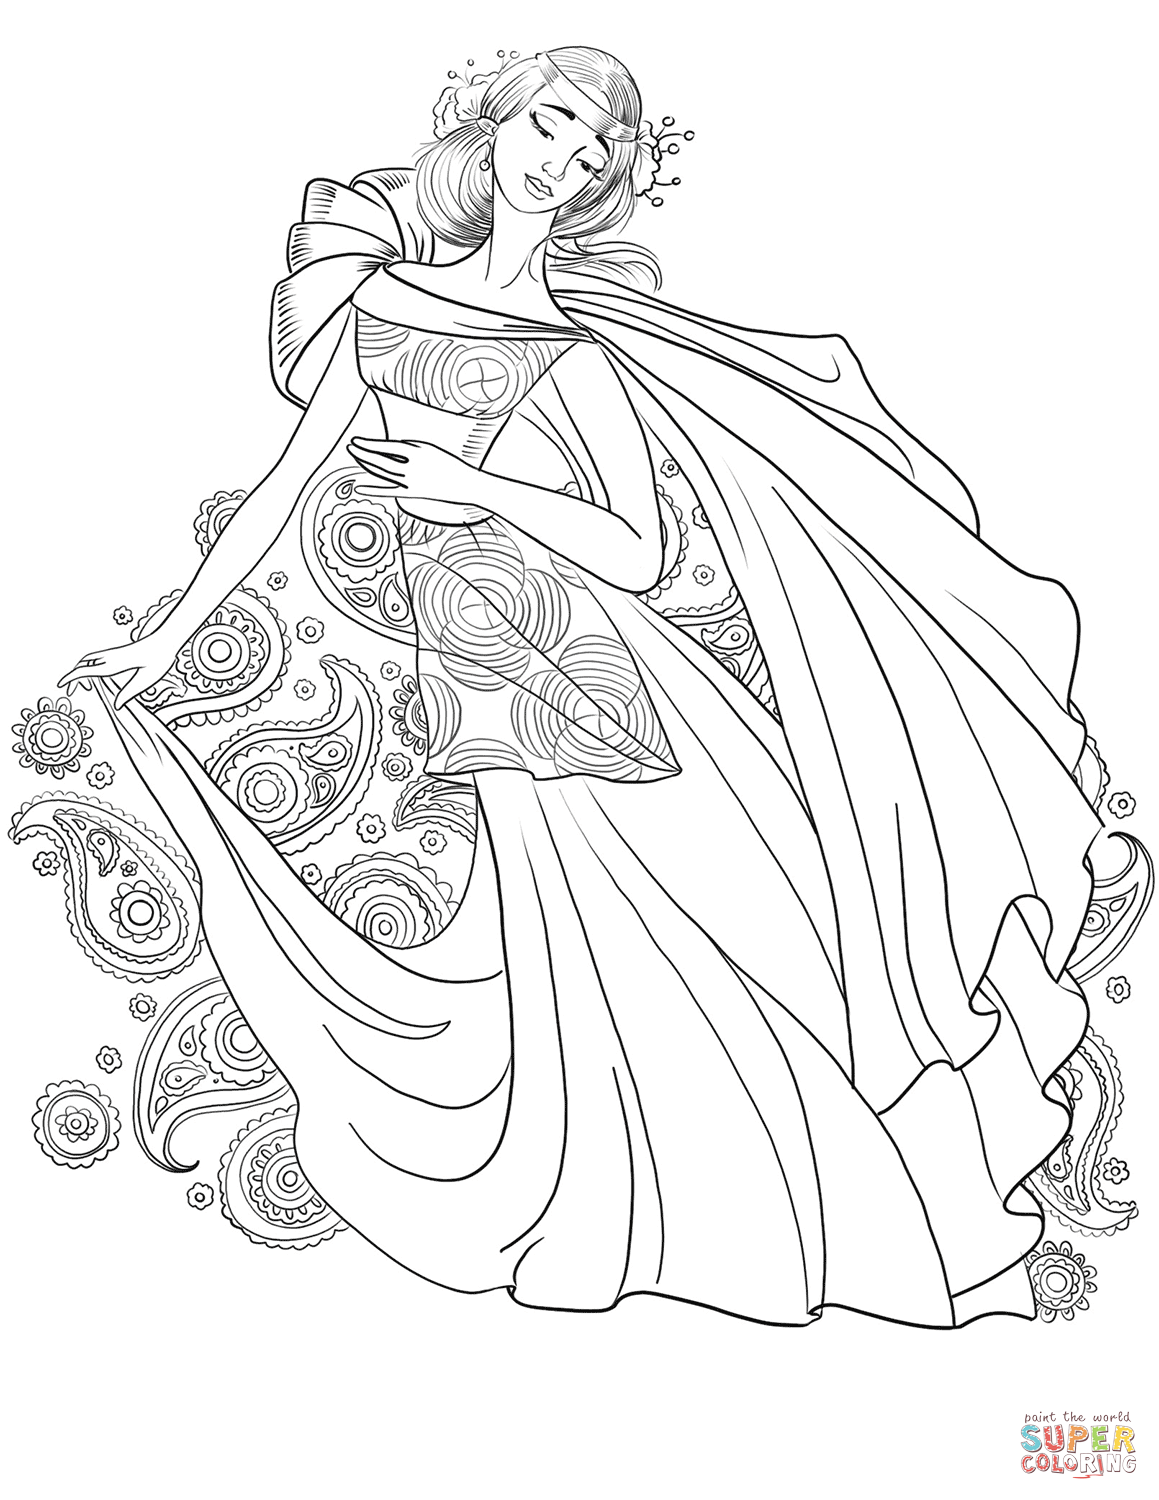 Lady from 70s with paisley motif super coloring